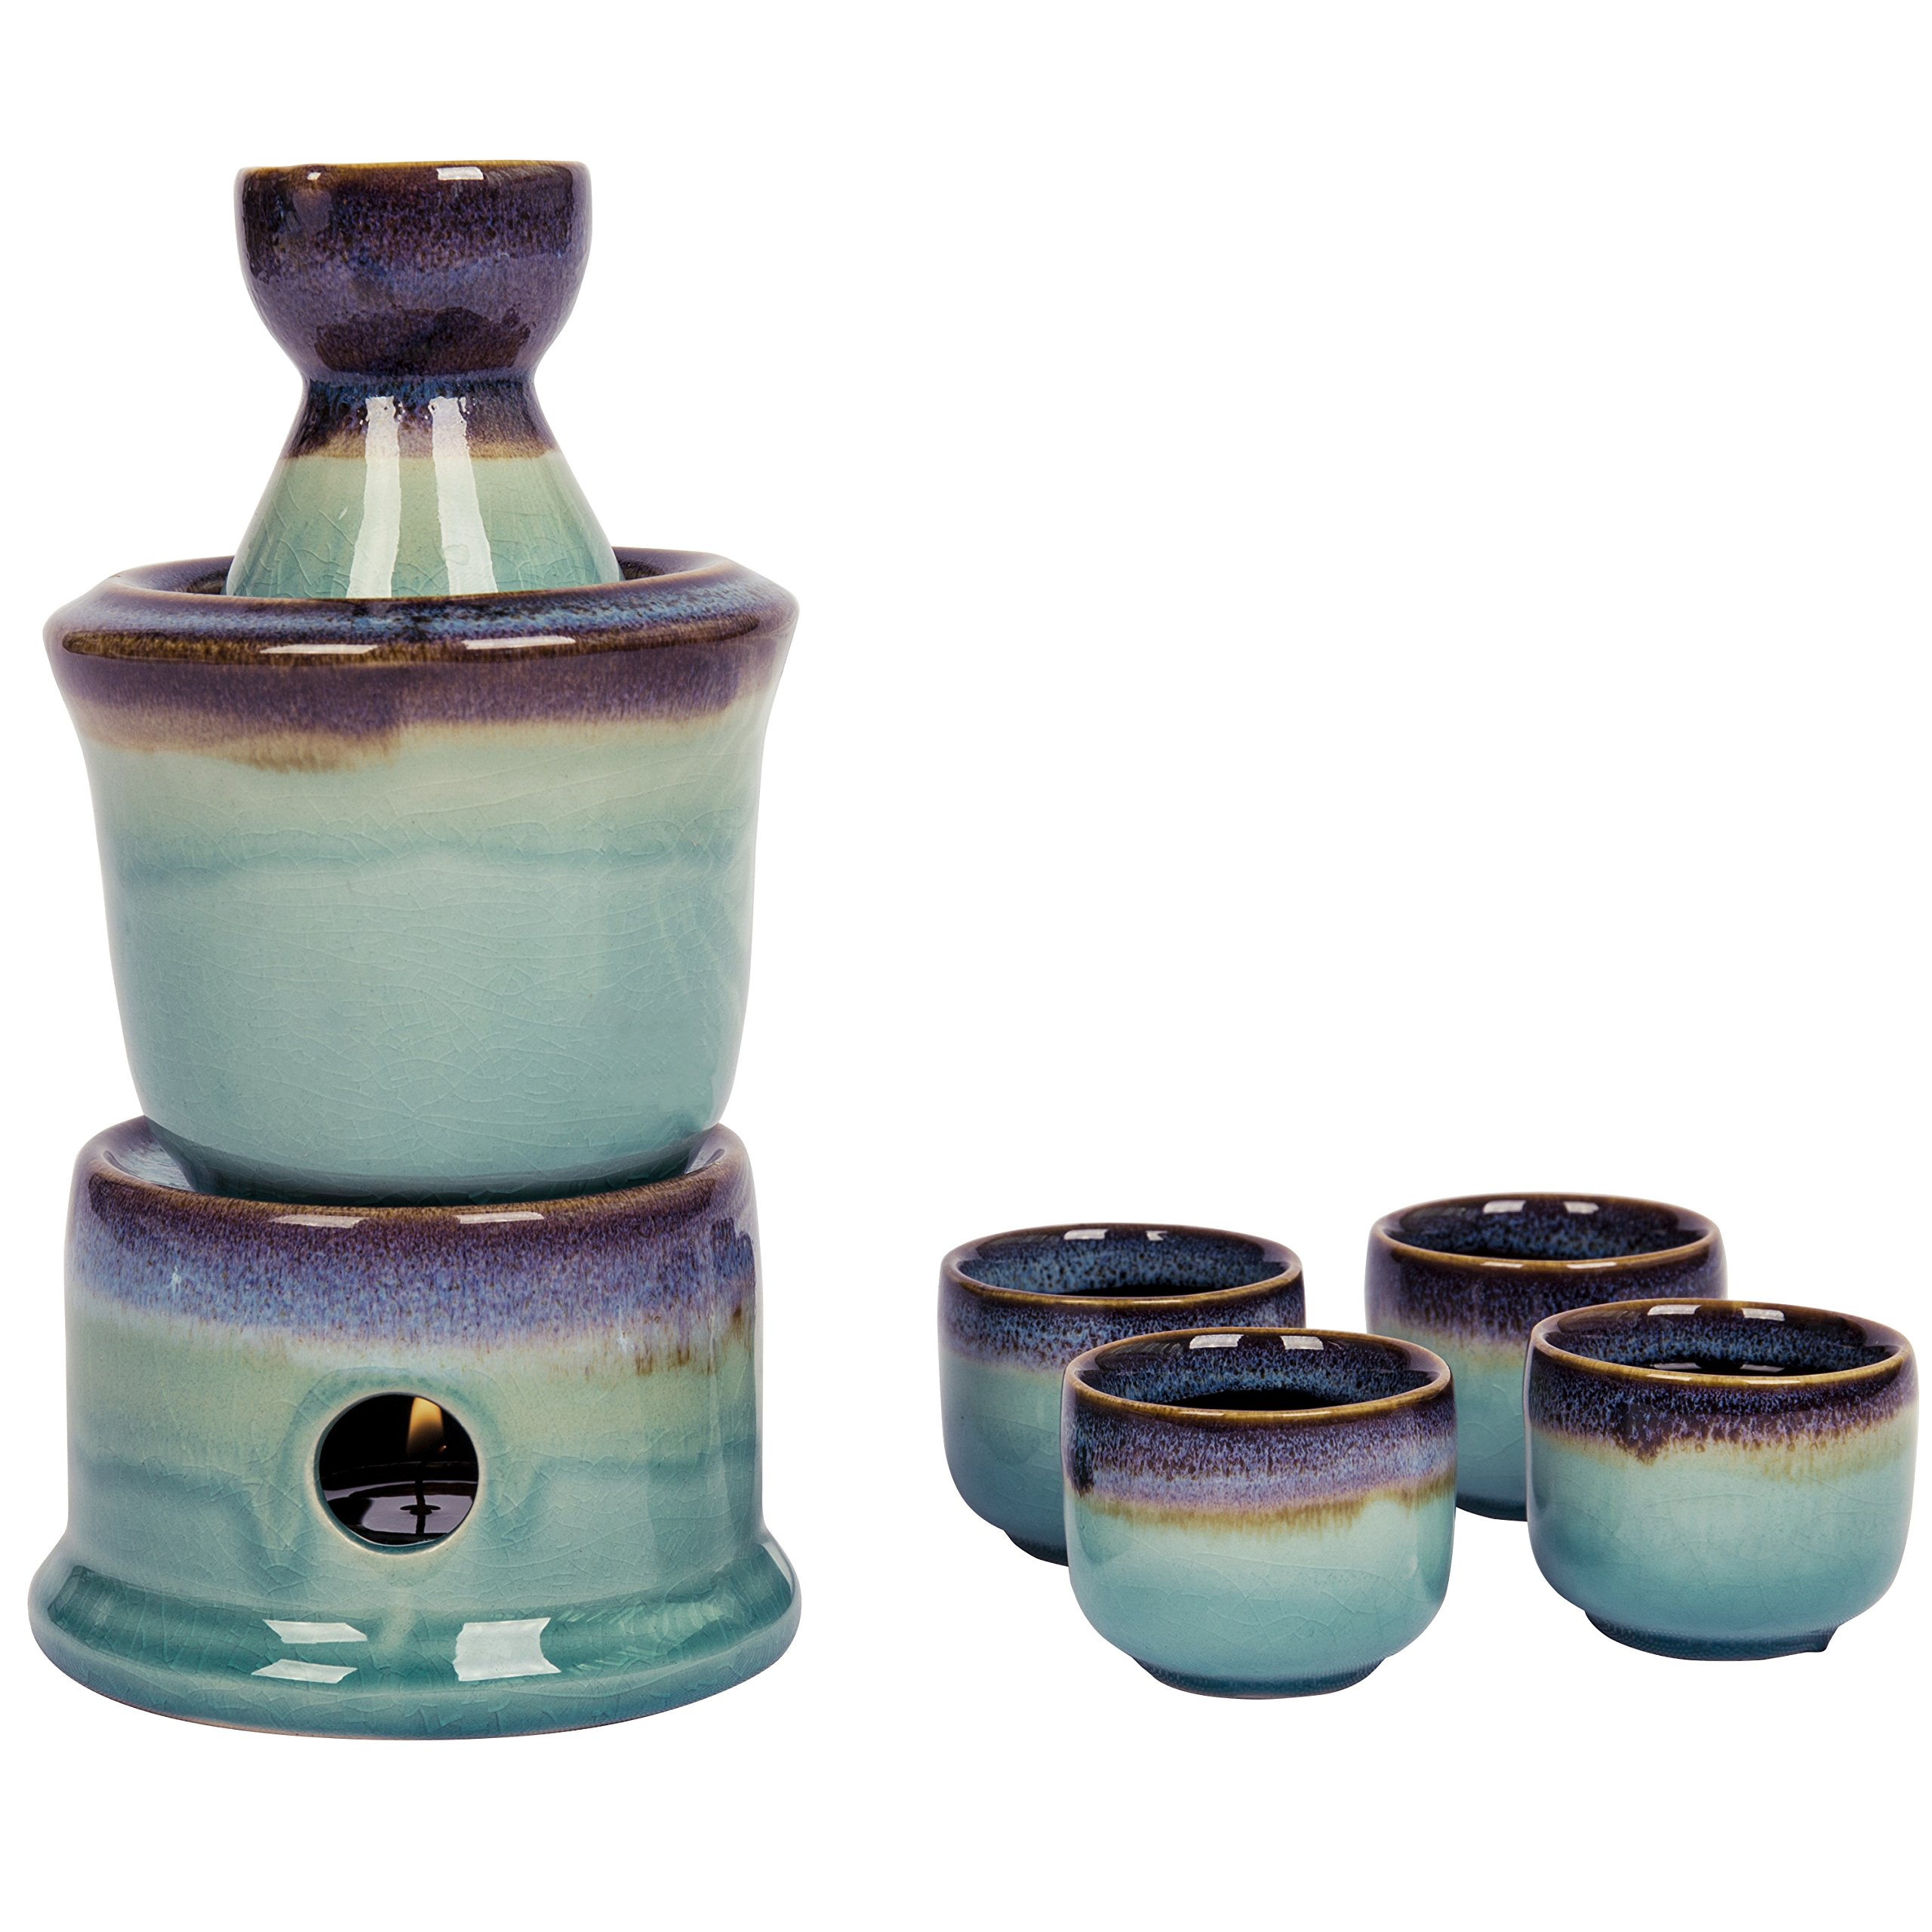 Japanese Style Ceramic Sake Serving Gift Set with Warmer, 7 Pcs, Purple by MyGift